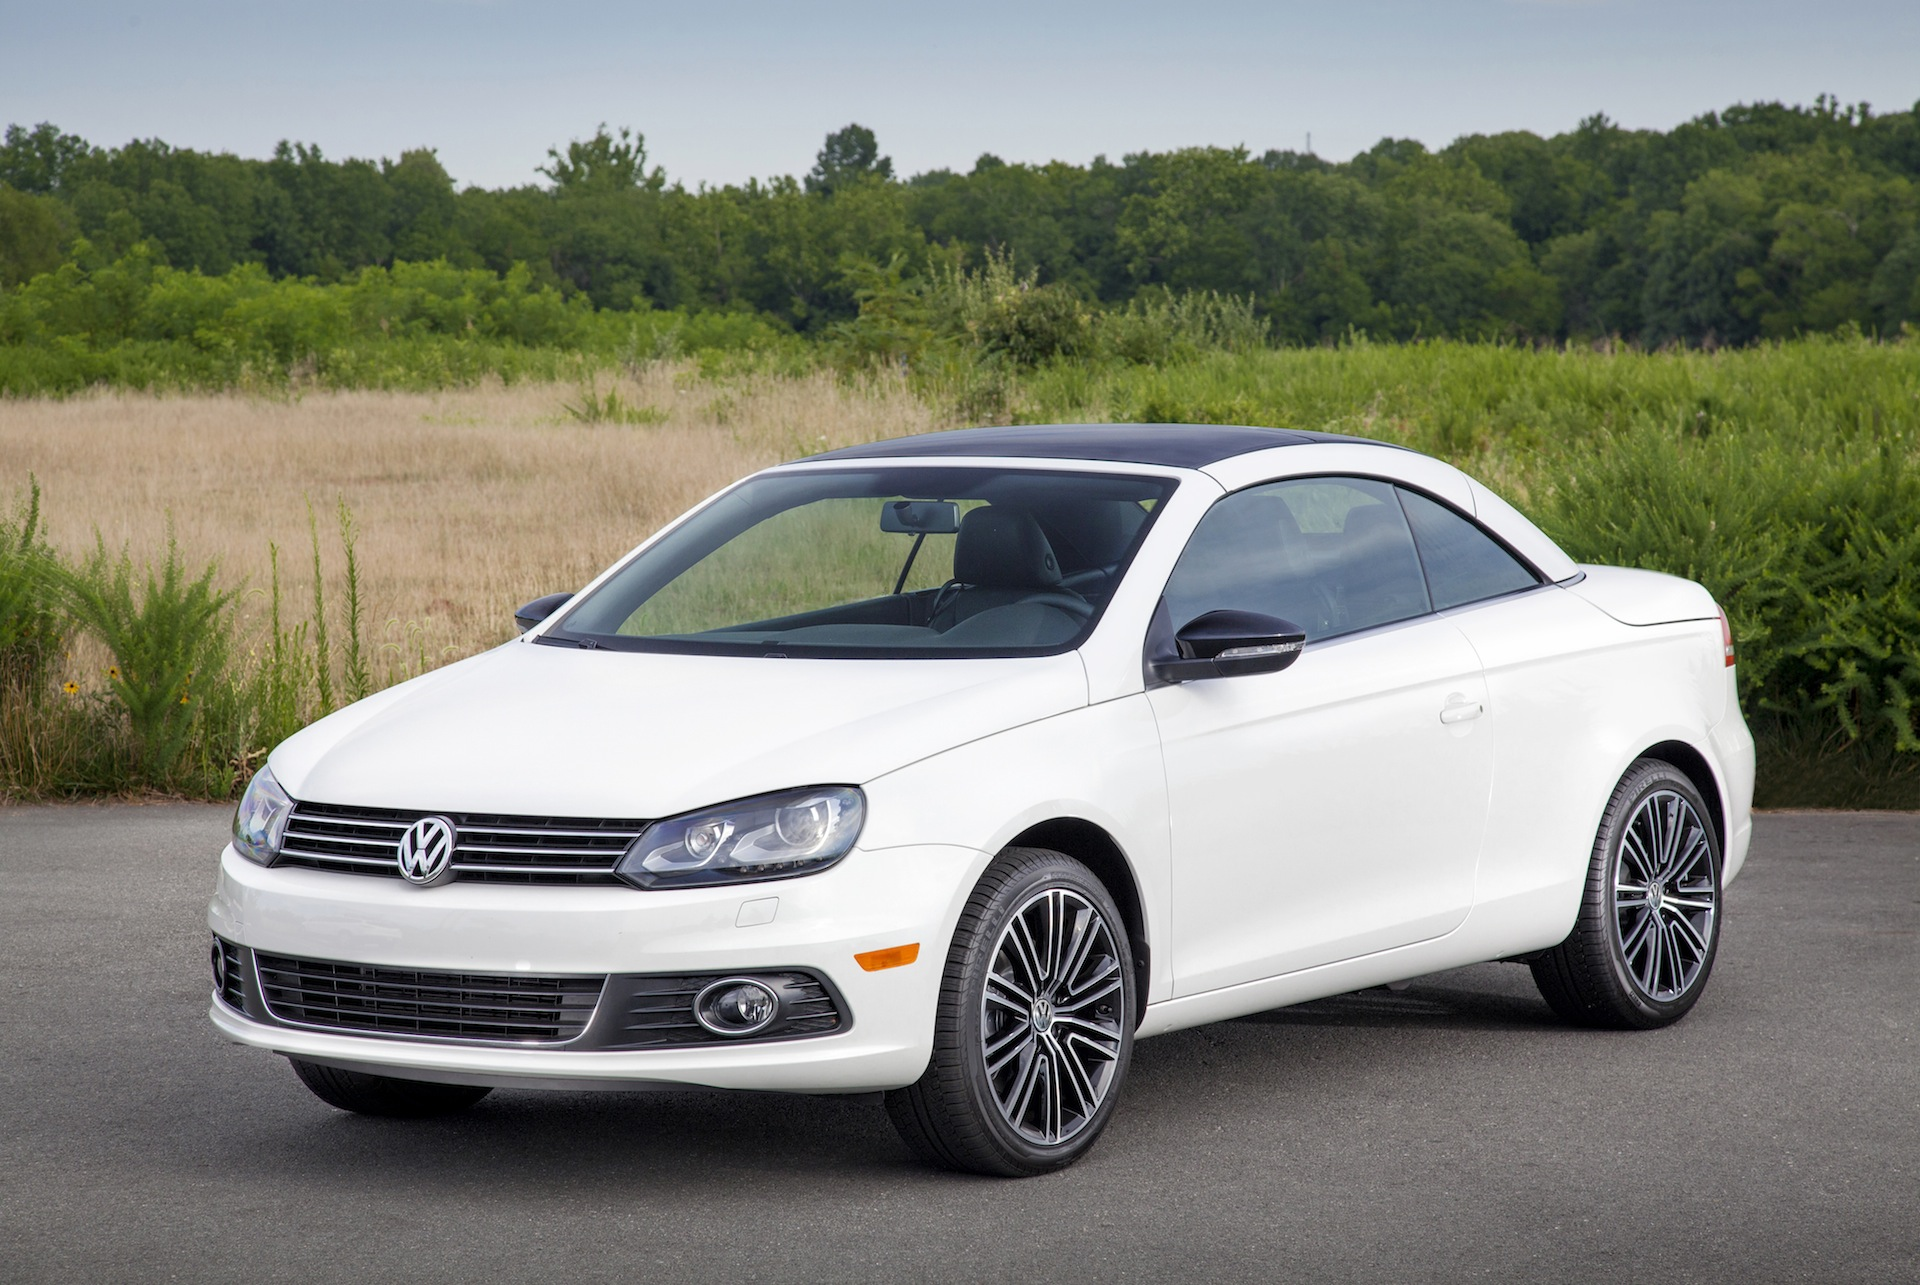 2014 Volkswagen Eos Vw Review Ratings Specs Prices